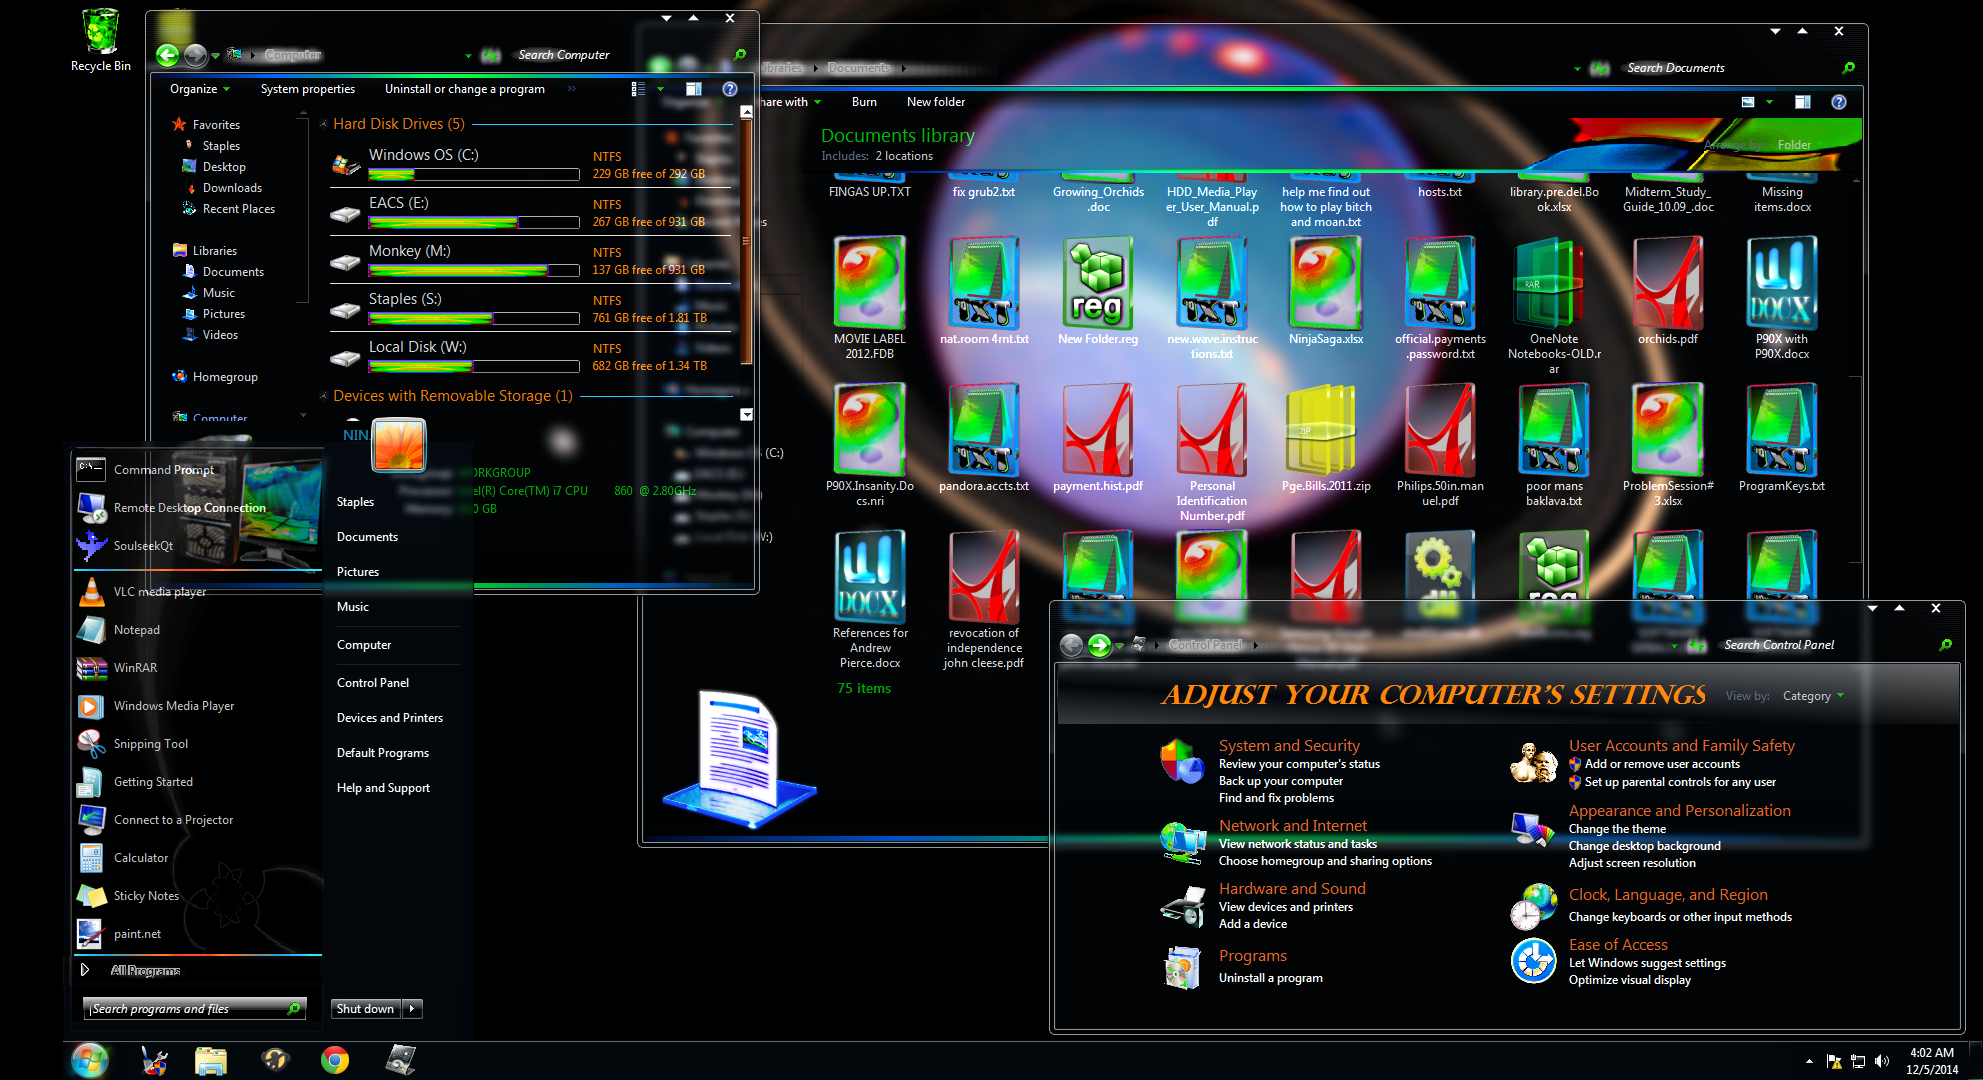 Windows 7. 7 full transparency 64-bit theme by kmcrct on deviantart.